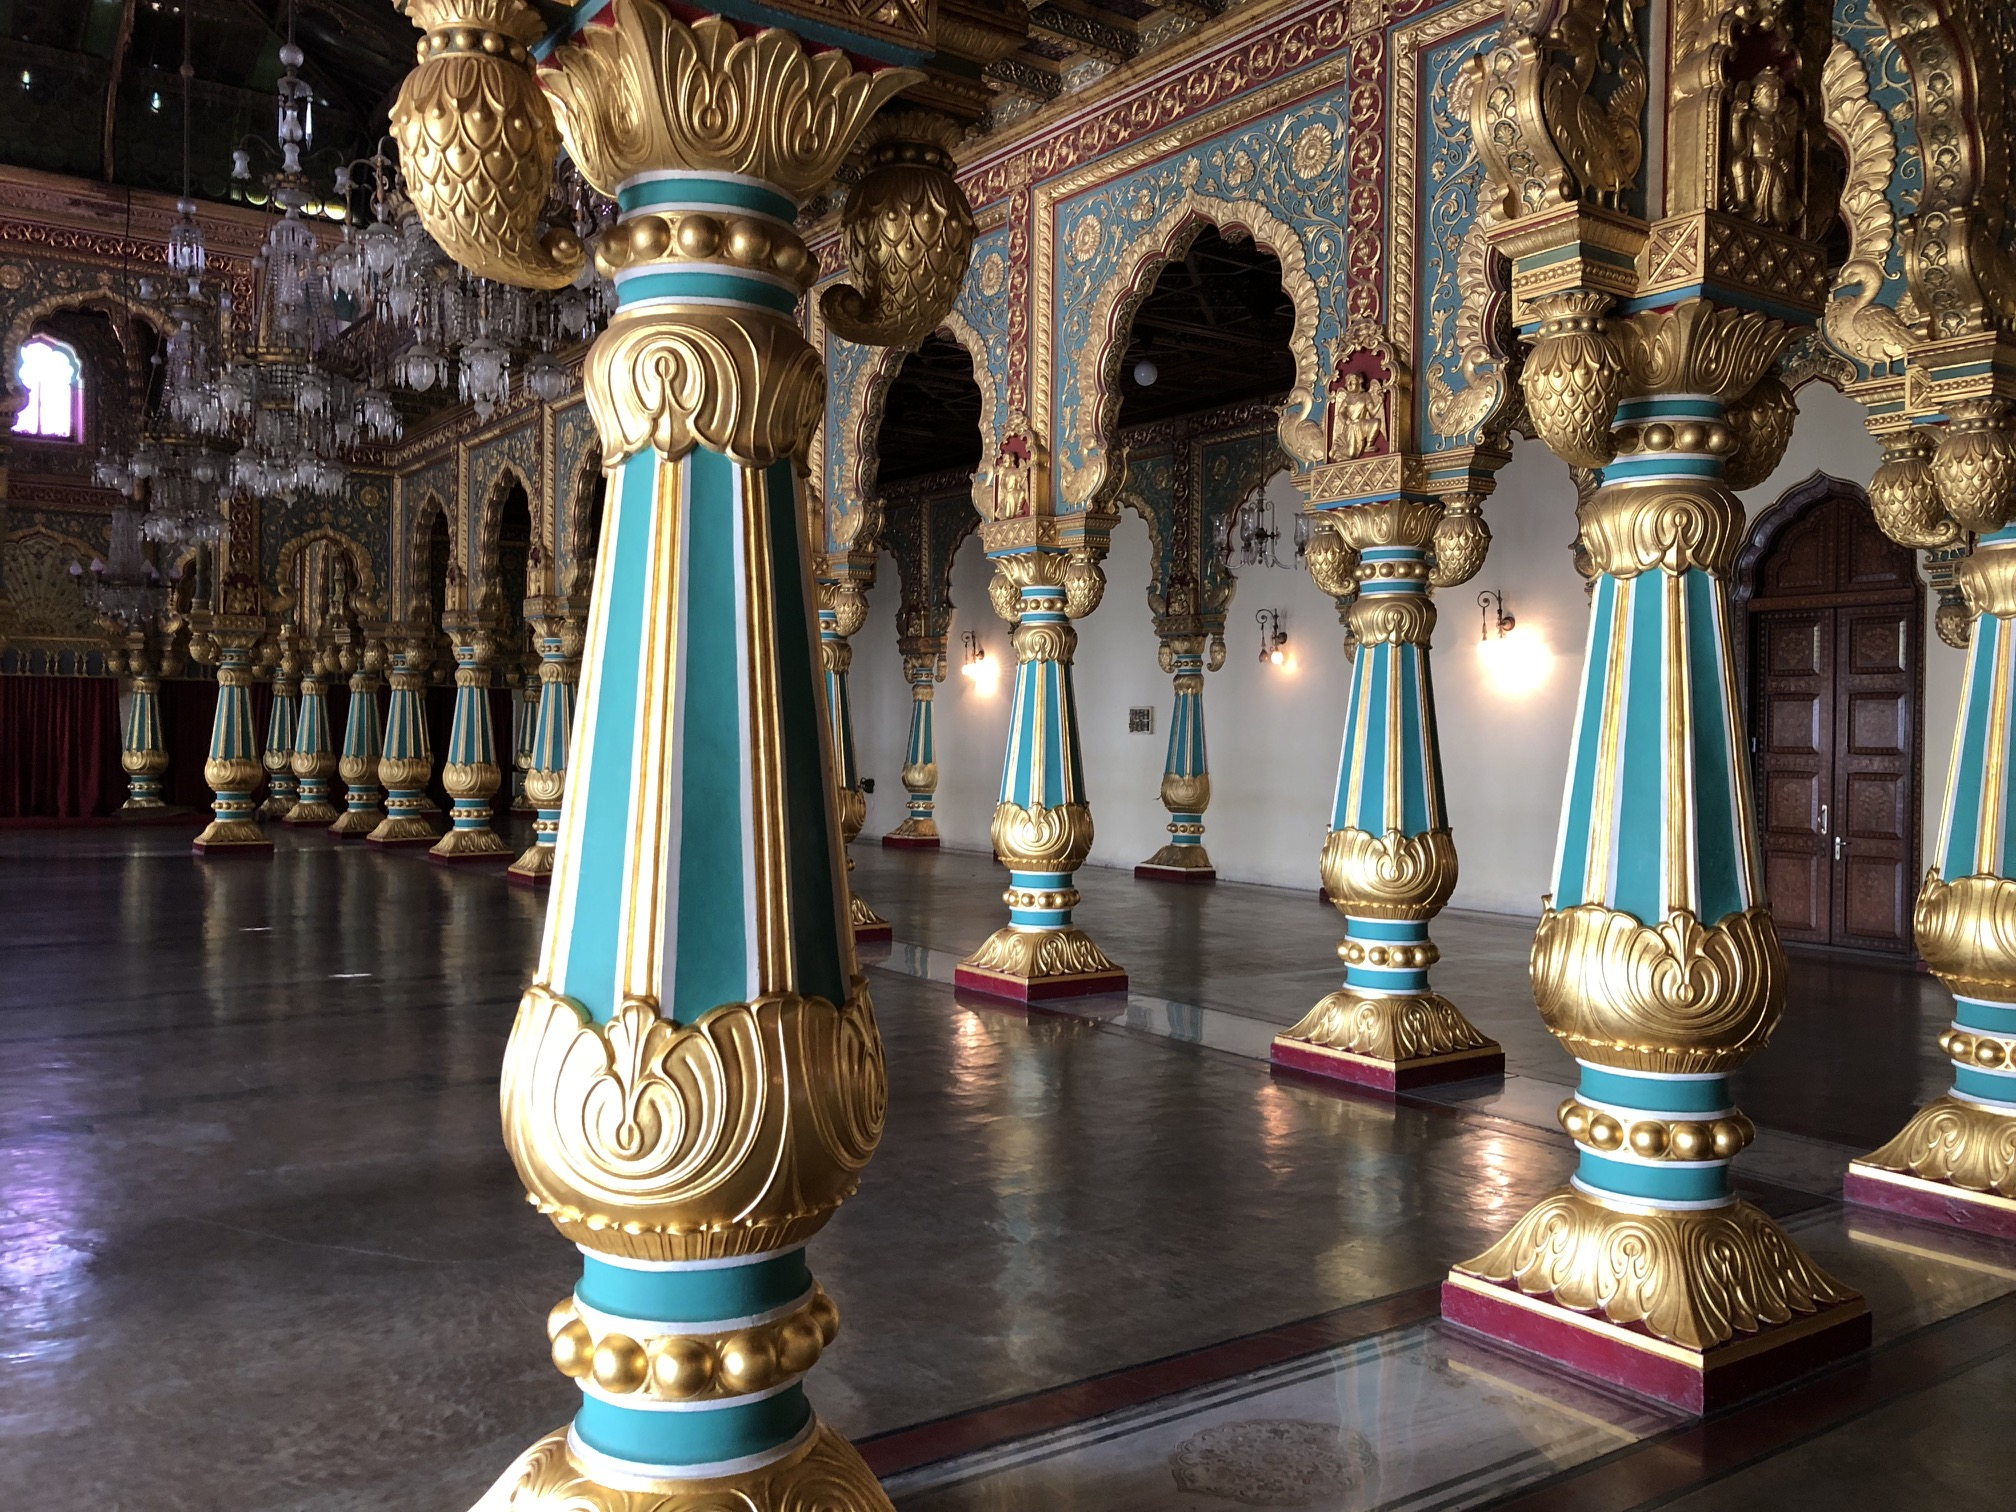 Columns of aqua and gold support a high ceiling with chandoliers.